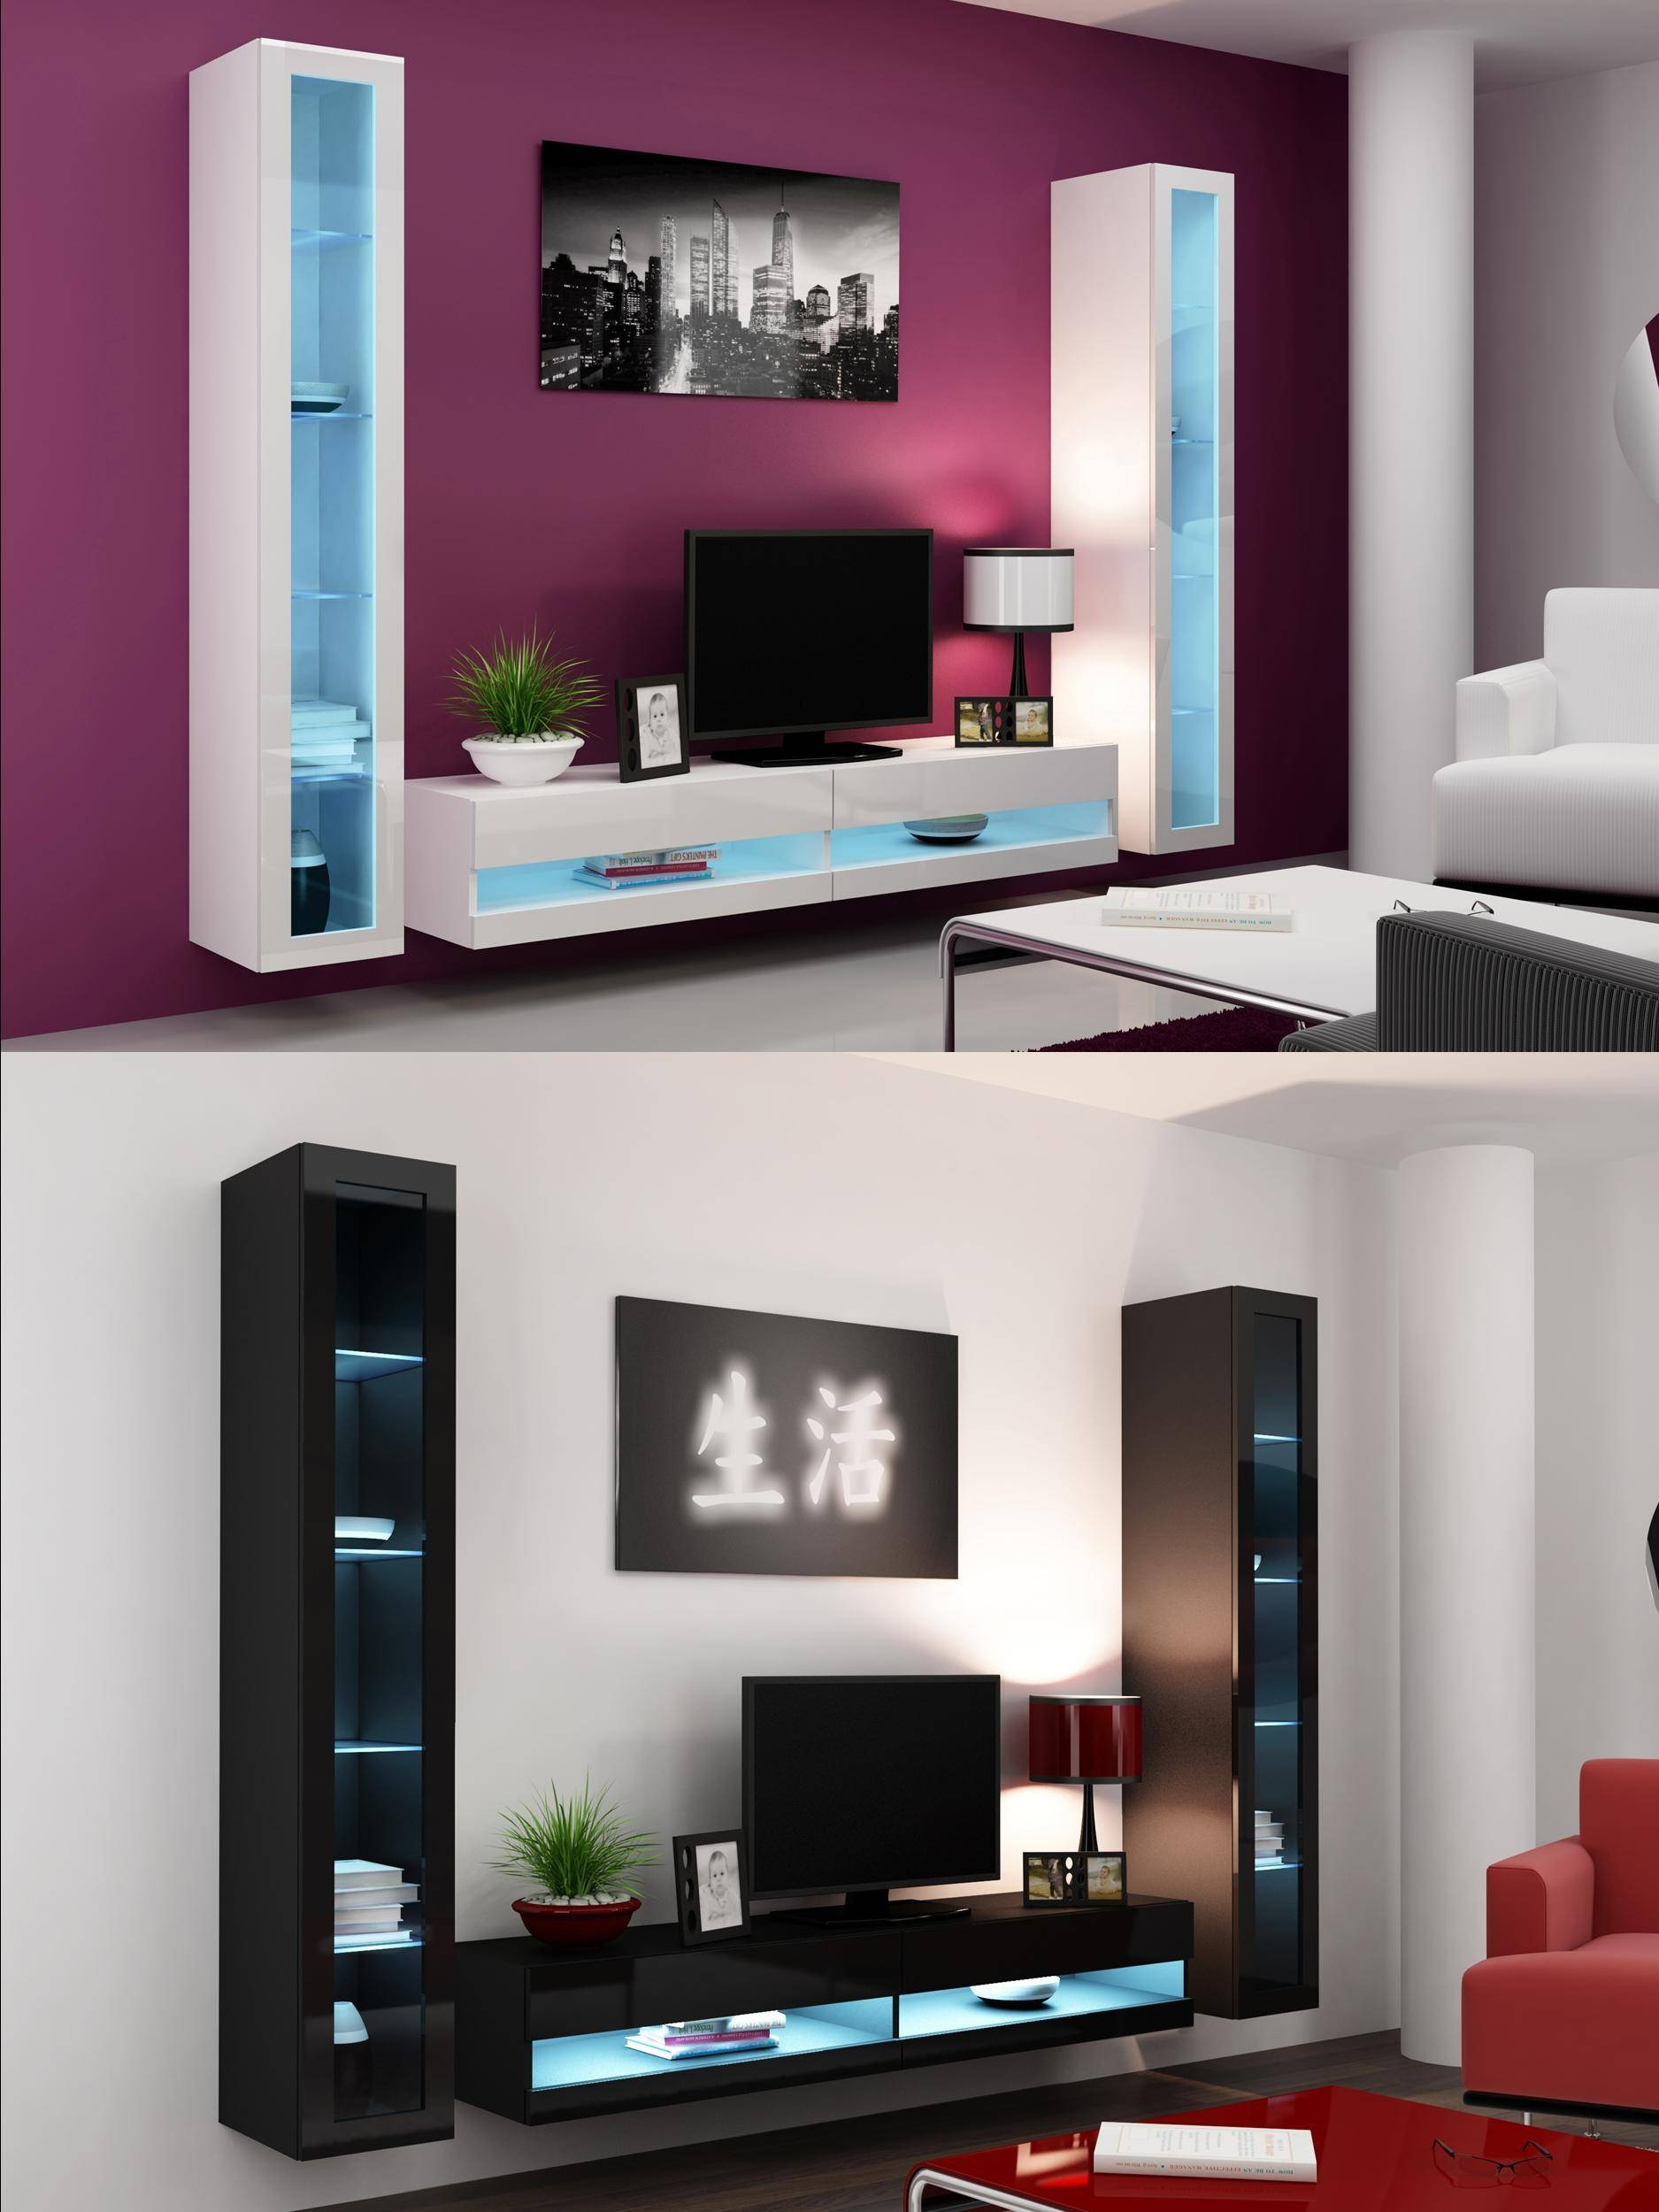 Wall Tv Unit Design Tv Unit: Top 15 Of Wall Display Units And Tv Cabinets